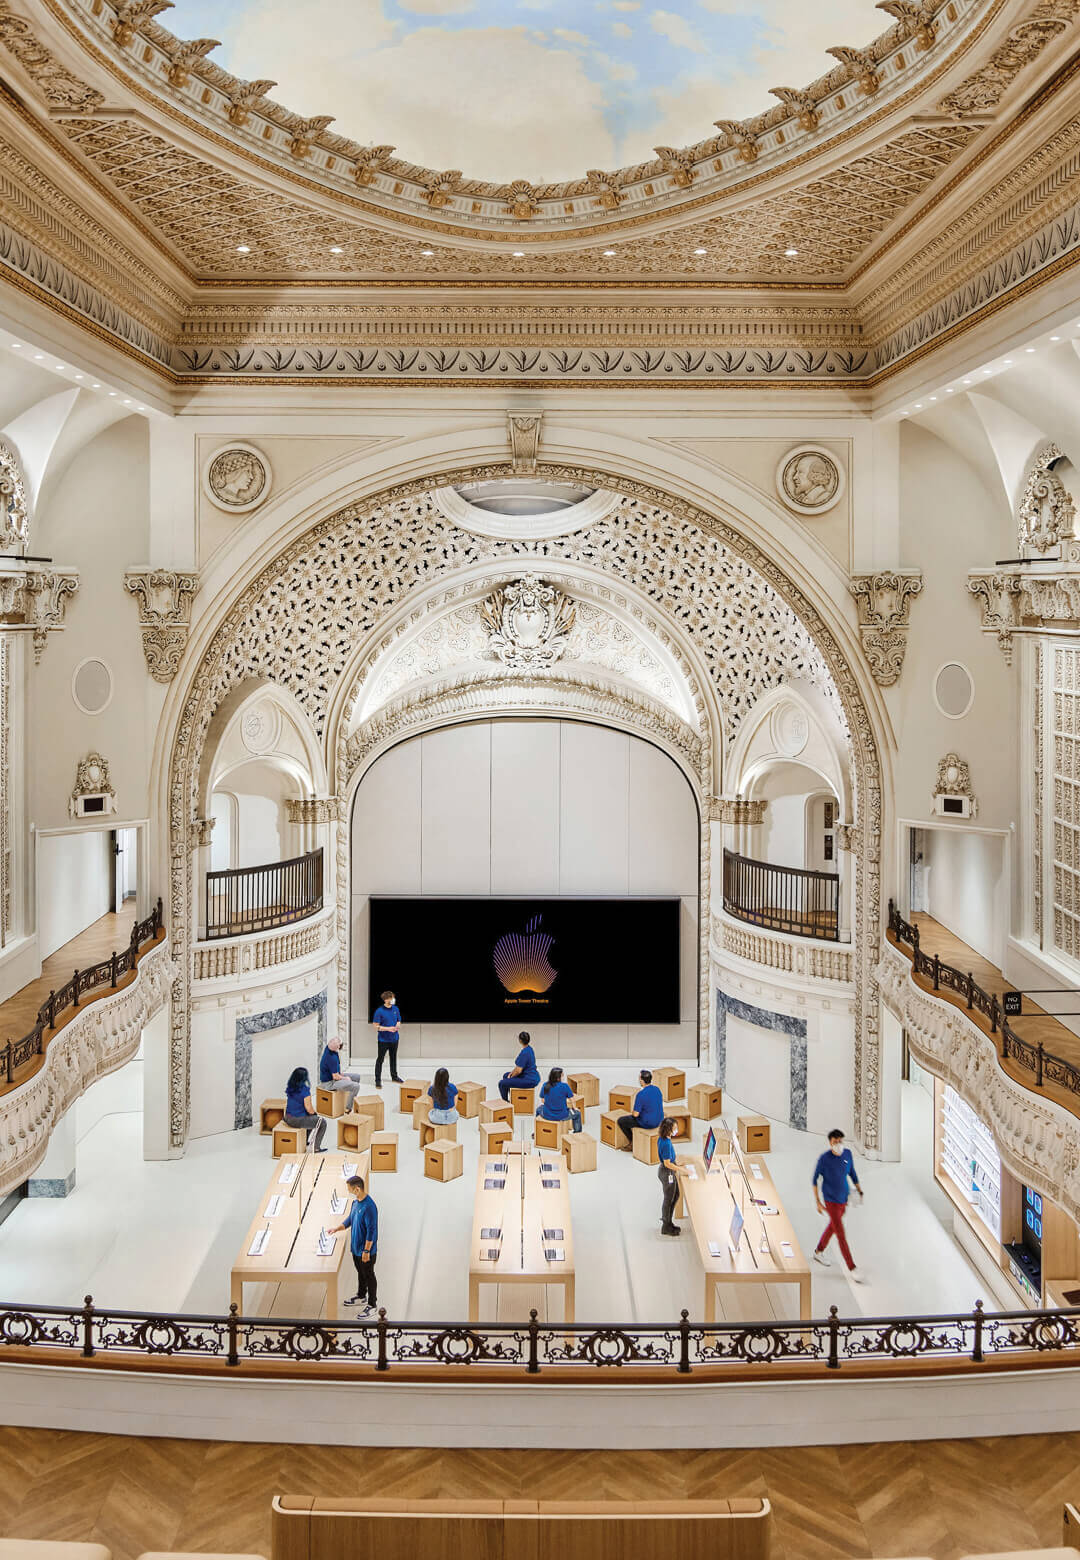 Apple opens doors to its 26th store in greater Los Angeles   Apple Tower Theatre   Fosters + Partners   STIRworld